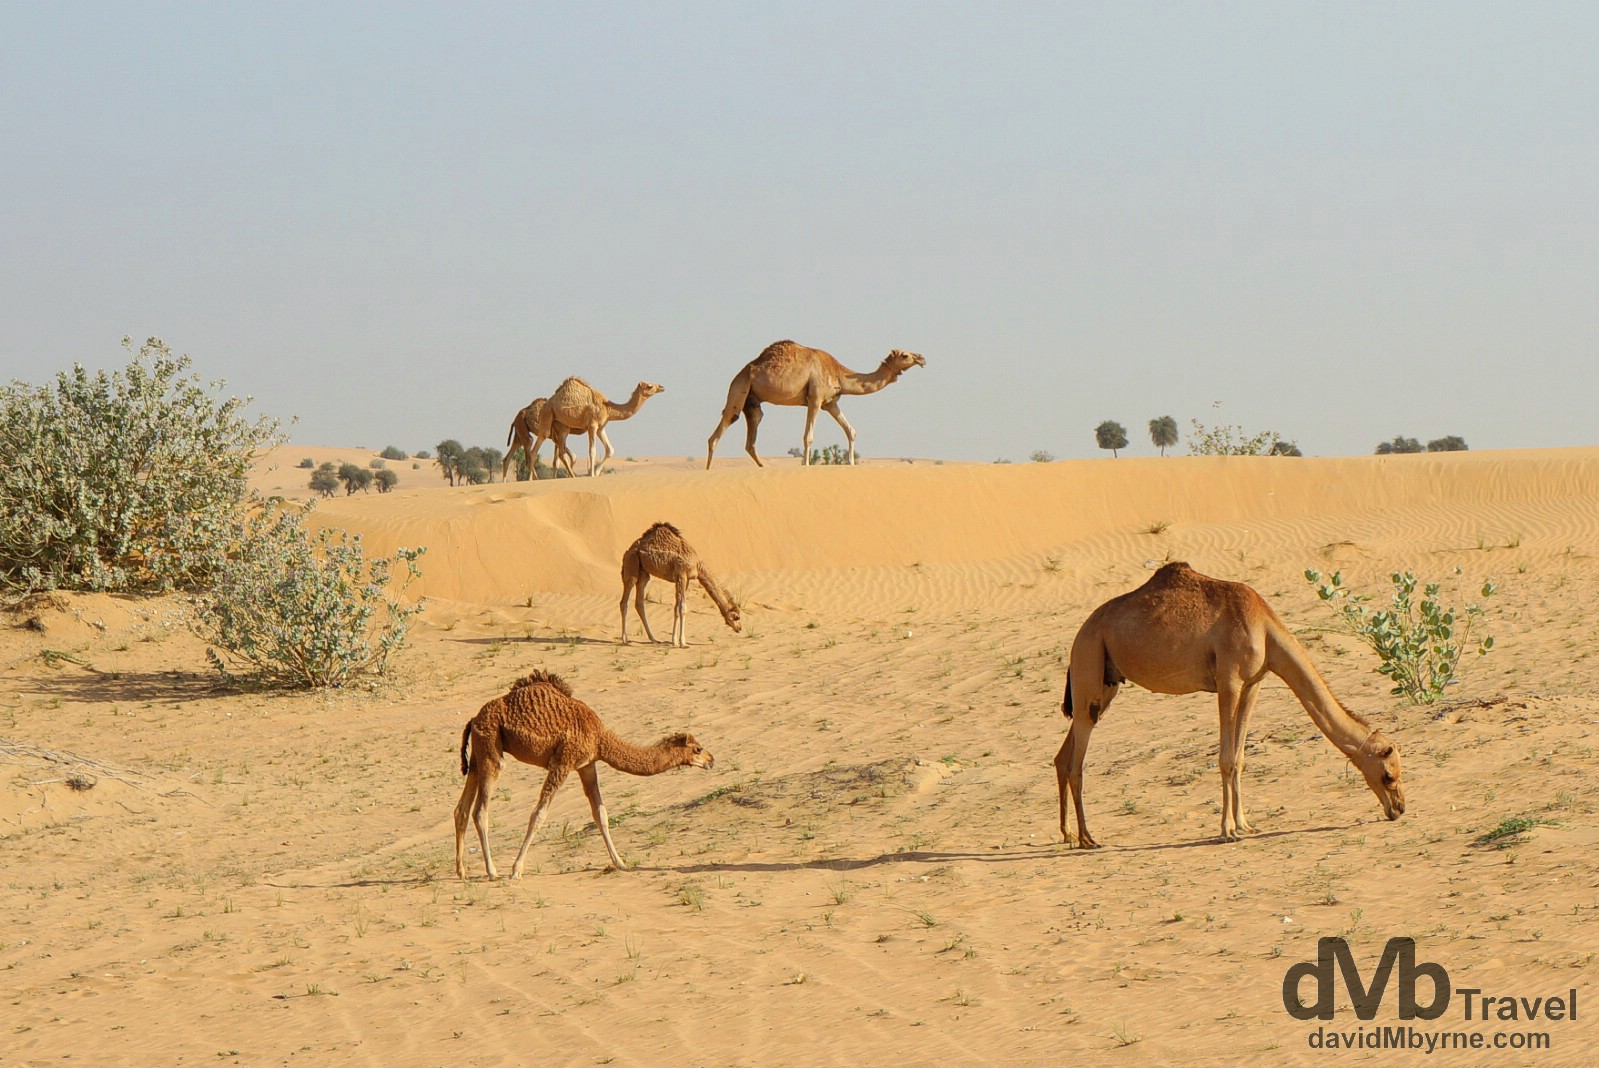 Camels on an early morning stroll in the desert outside Dubai, UAE. April 18th, 2014.